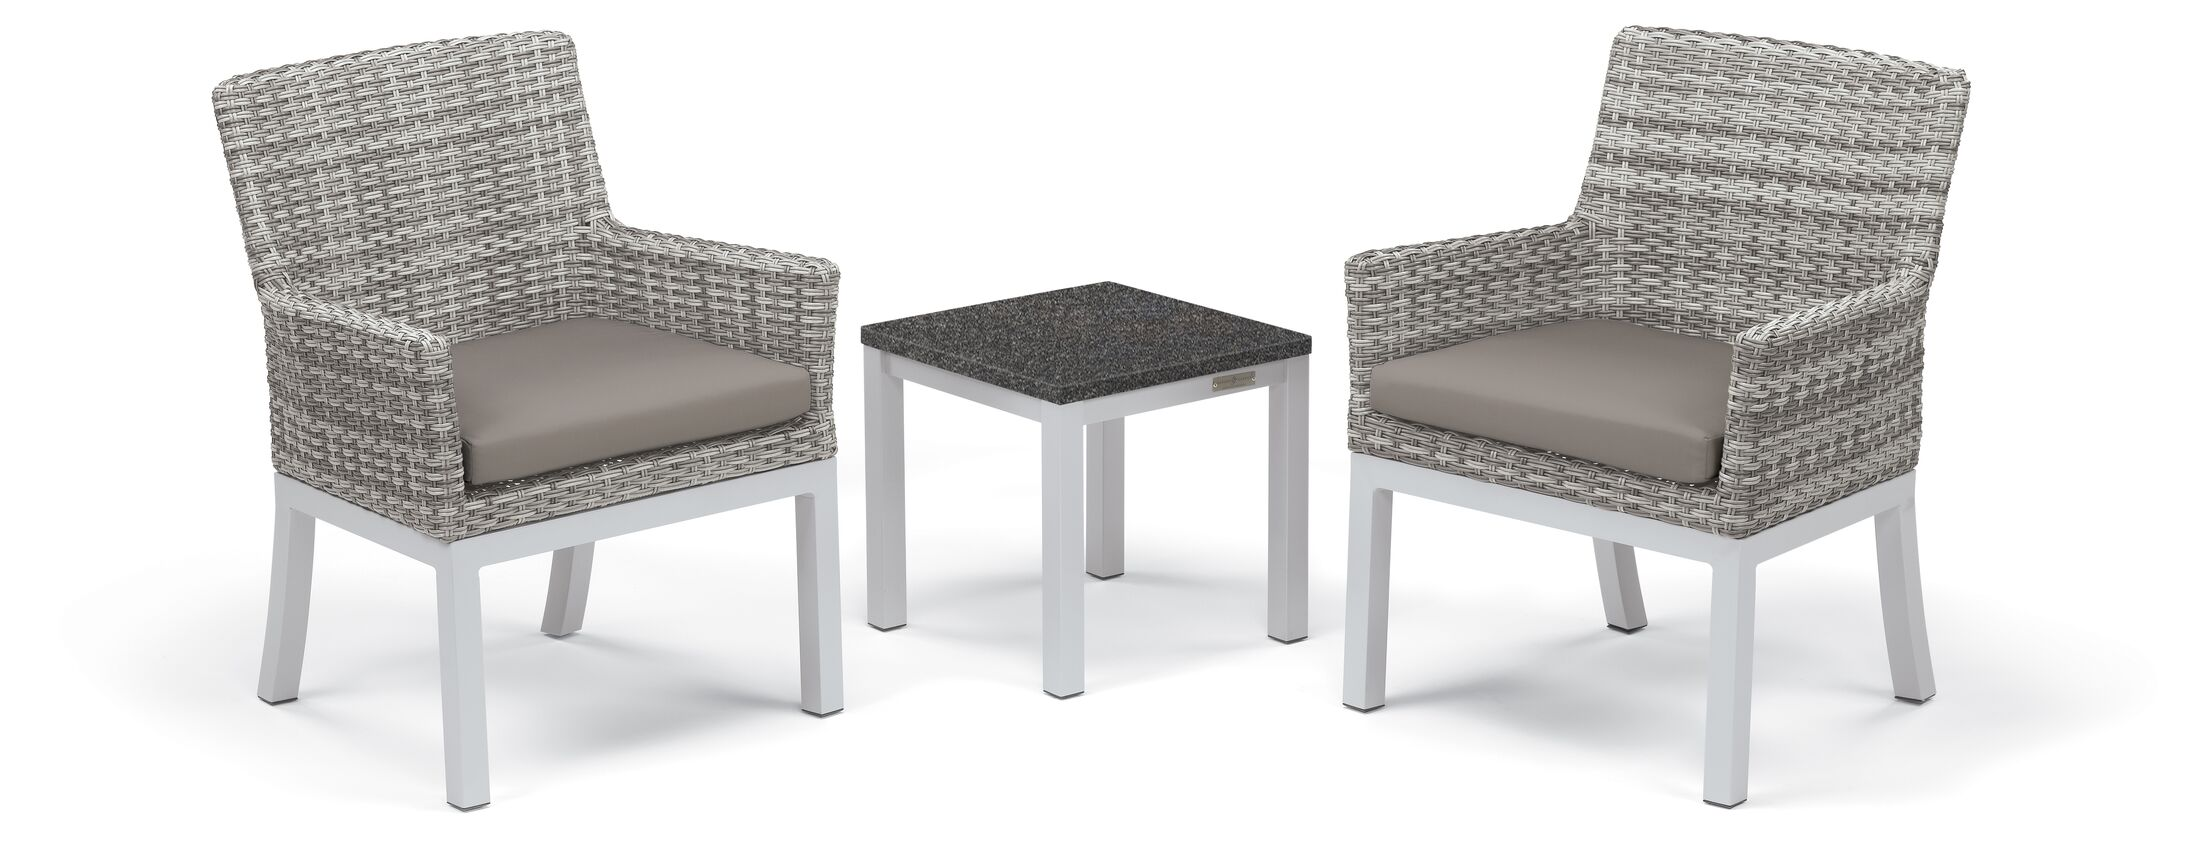 Lambright 3 Piece Conversation Set with Cushions Frame Color: Charcoal, Fabric: Stone